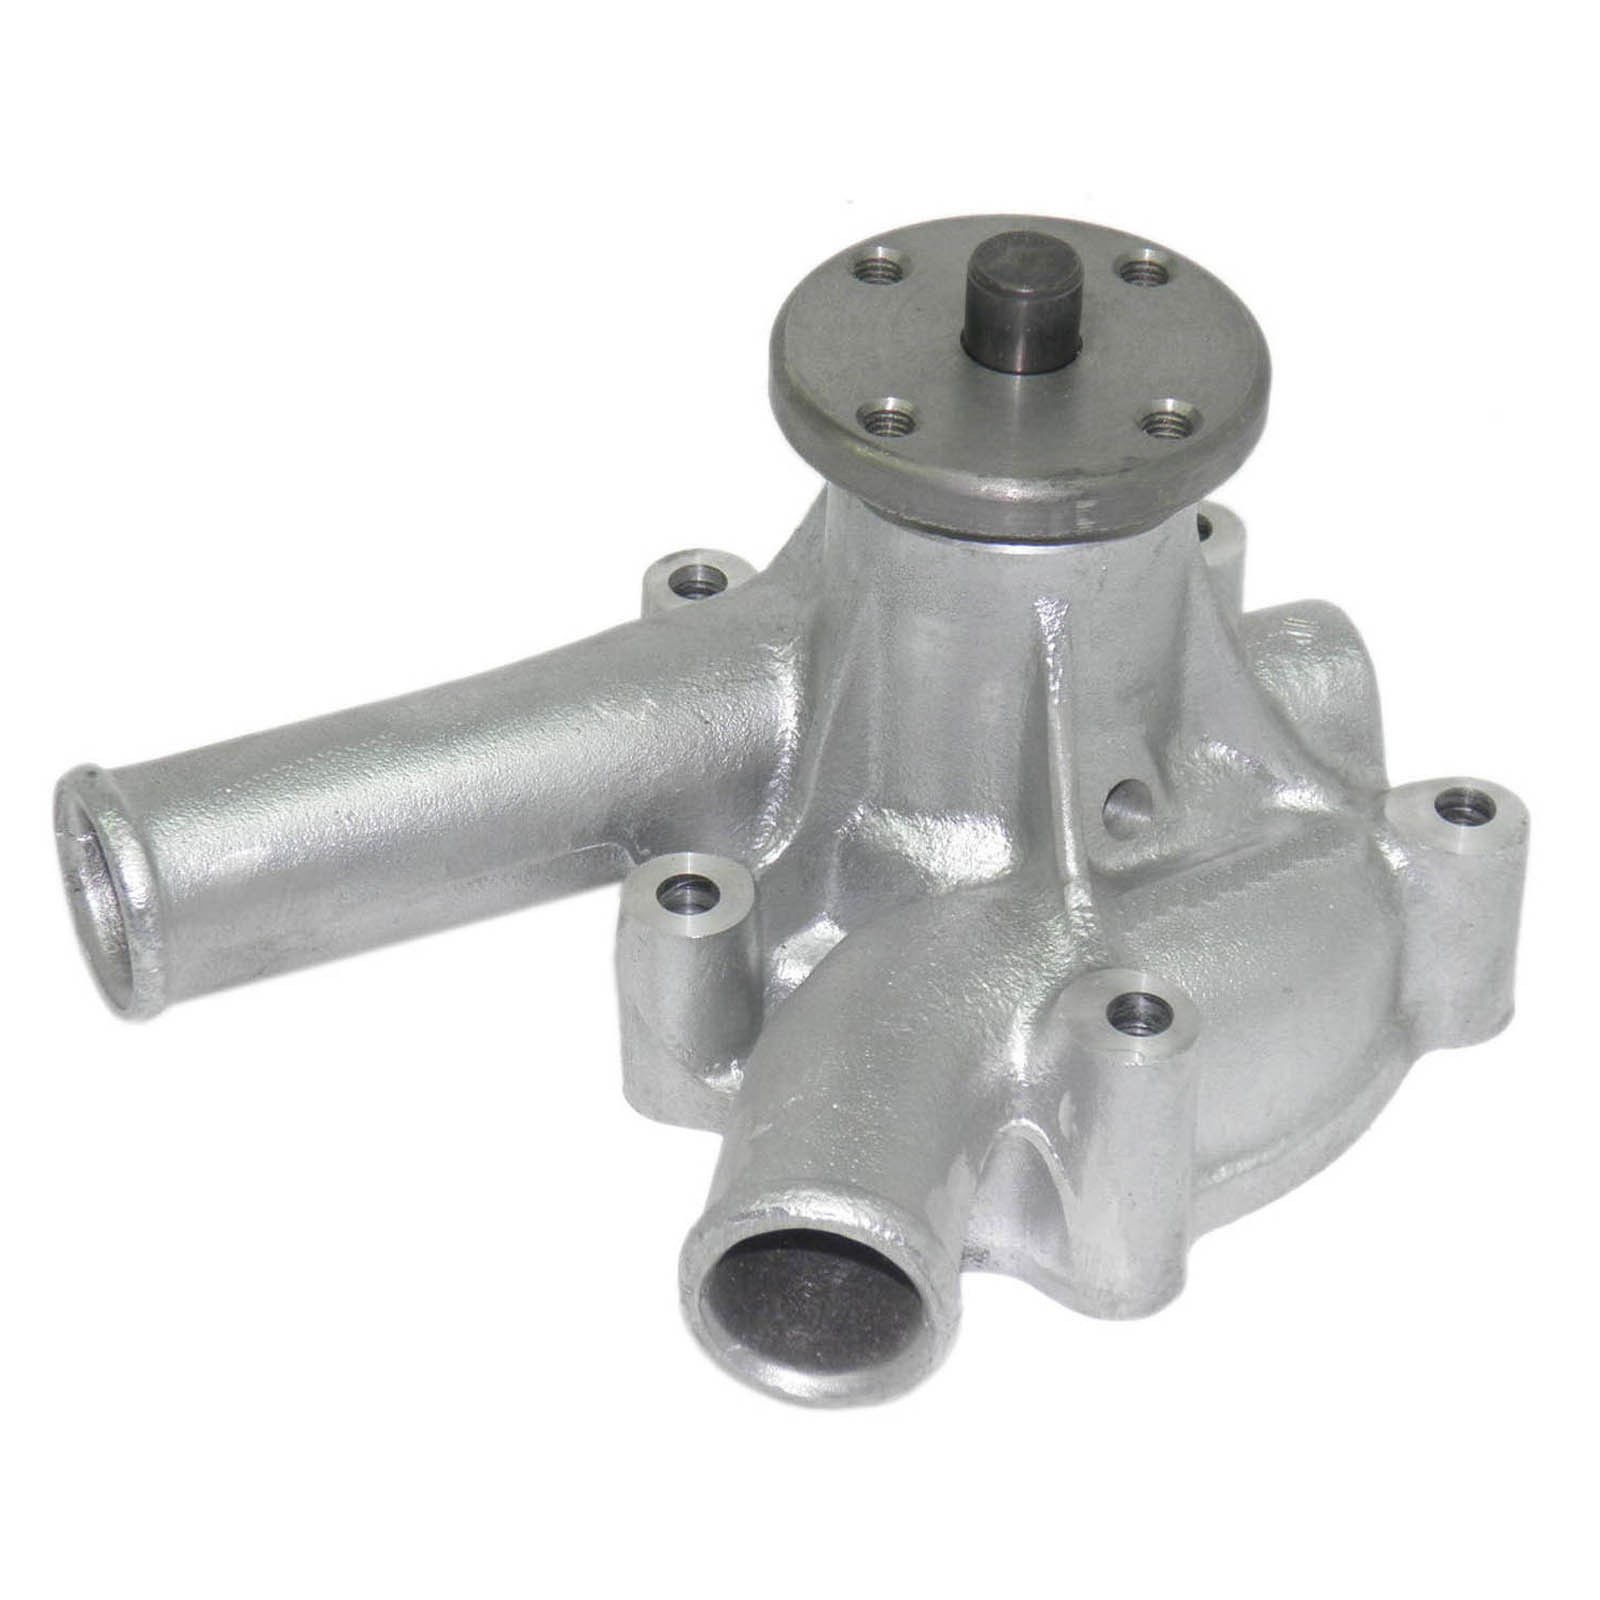 Forklift Supply - Aftermarket Clark Forklift Water Pump PN 909301